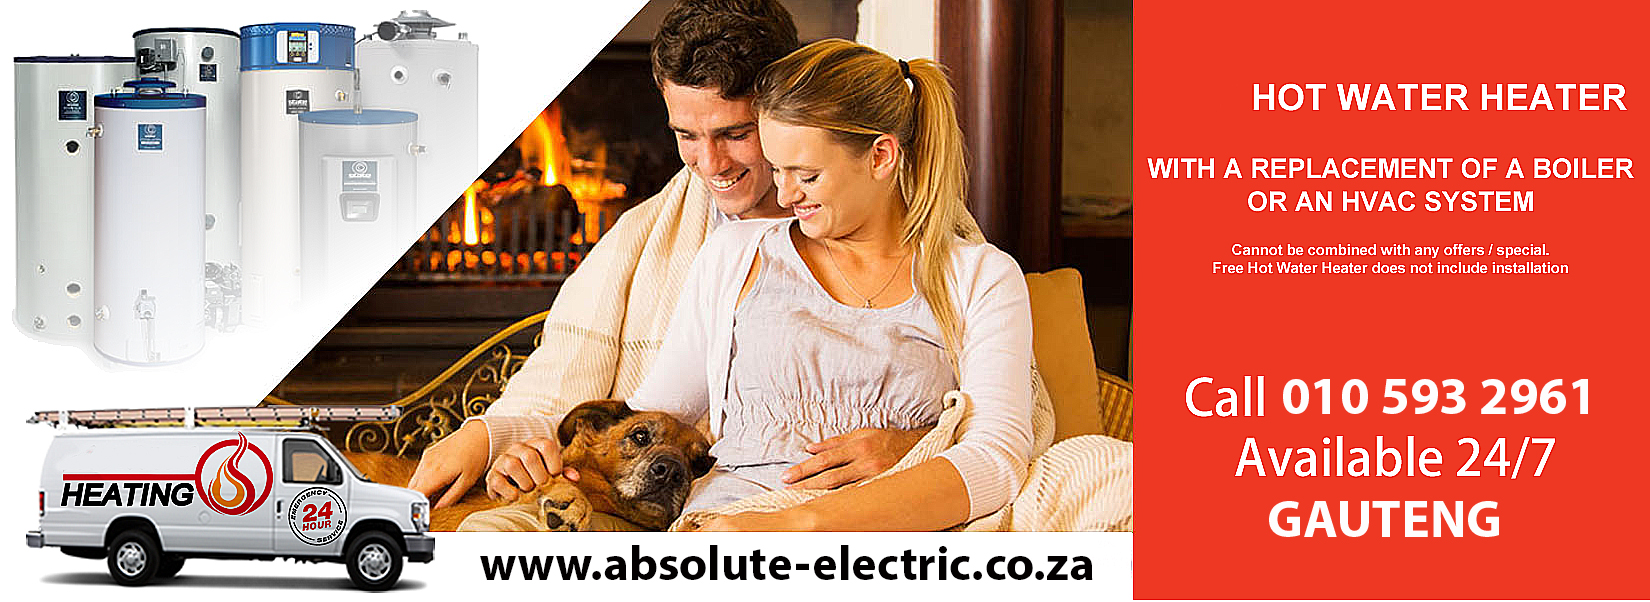 Emergency Electrician Call Us Now 0105932961 Johannesburg